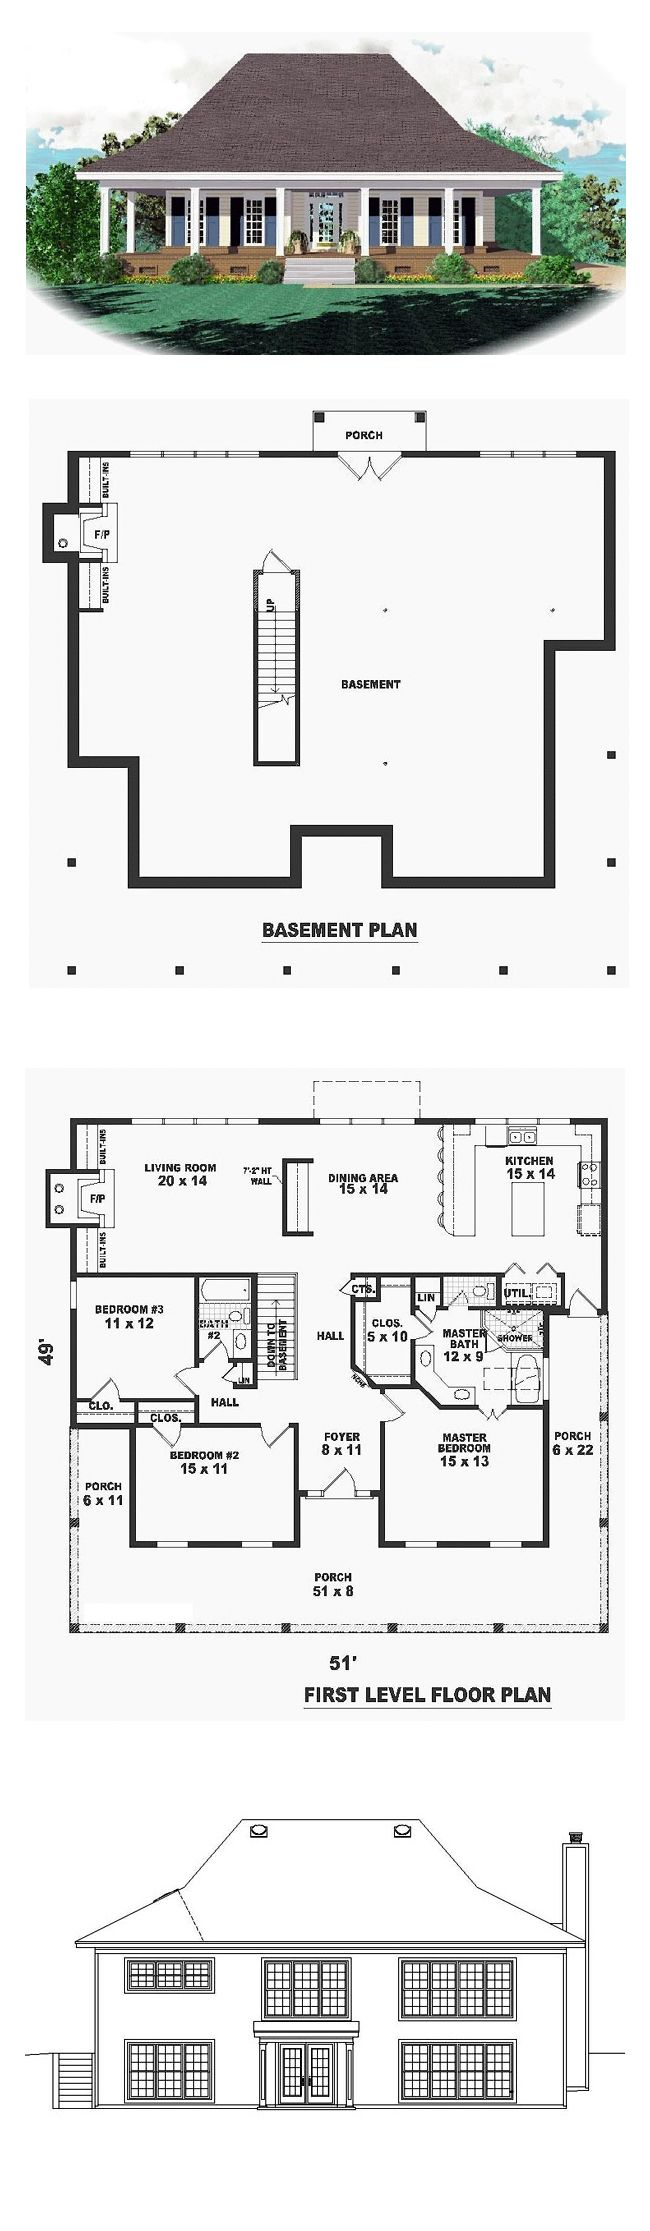 16 Best House Plans With Finished Basements Images On